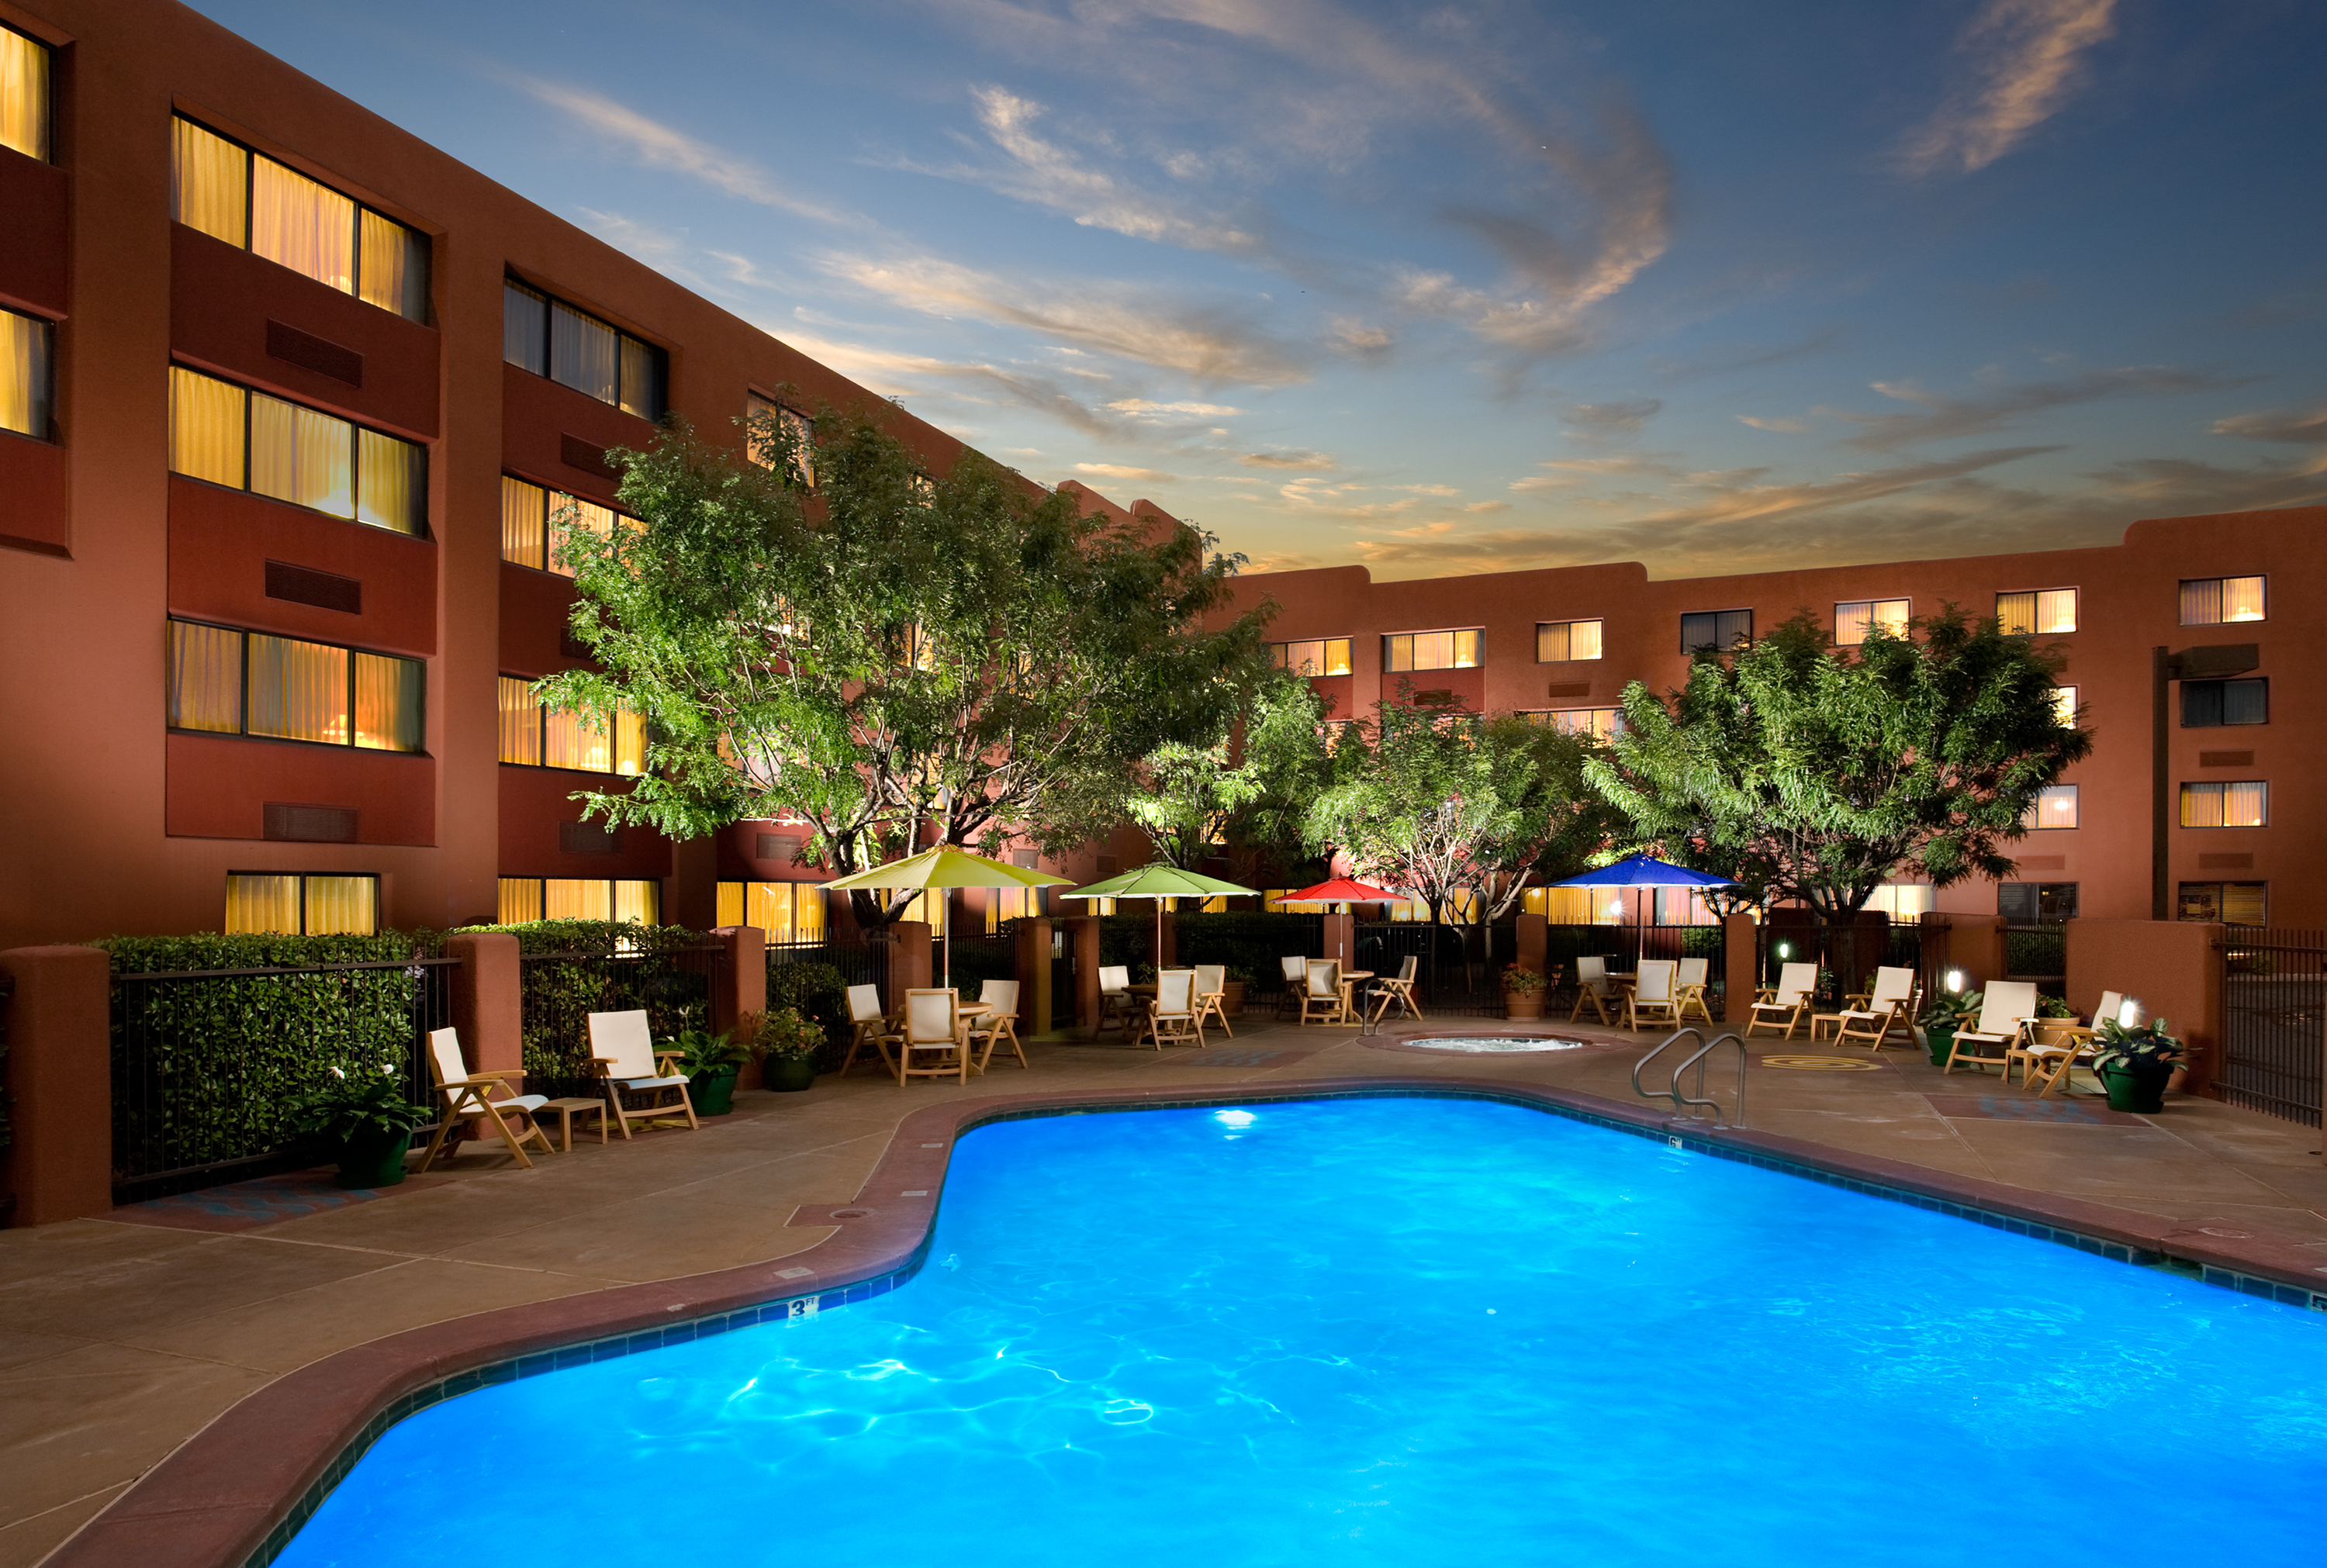 Our outdoor pool is the perfect place to rejuvenate after a day of exploring Historic Old Town Plaza.